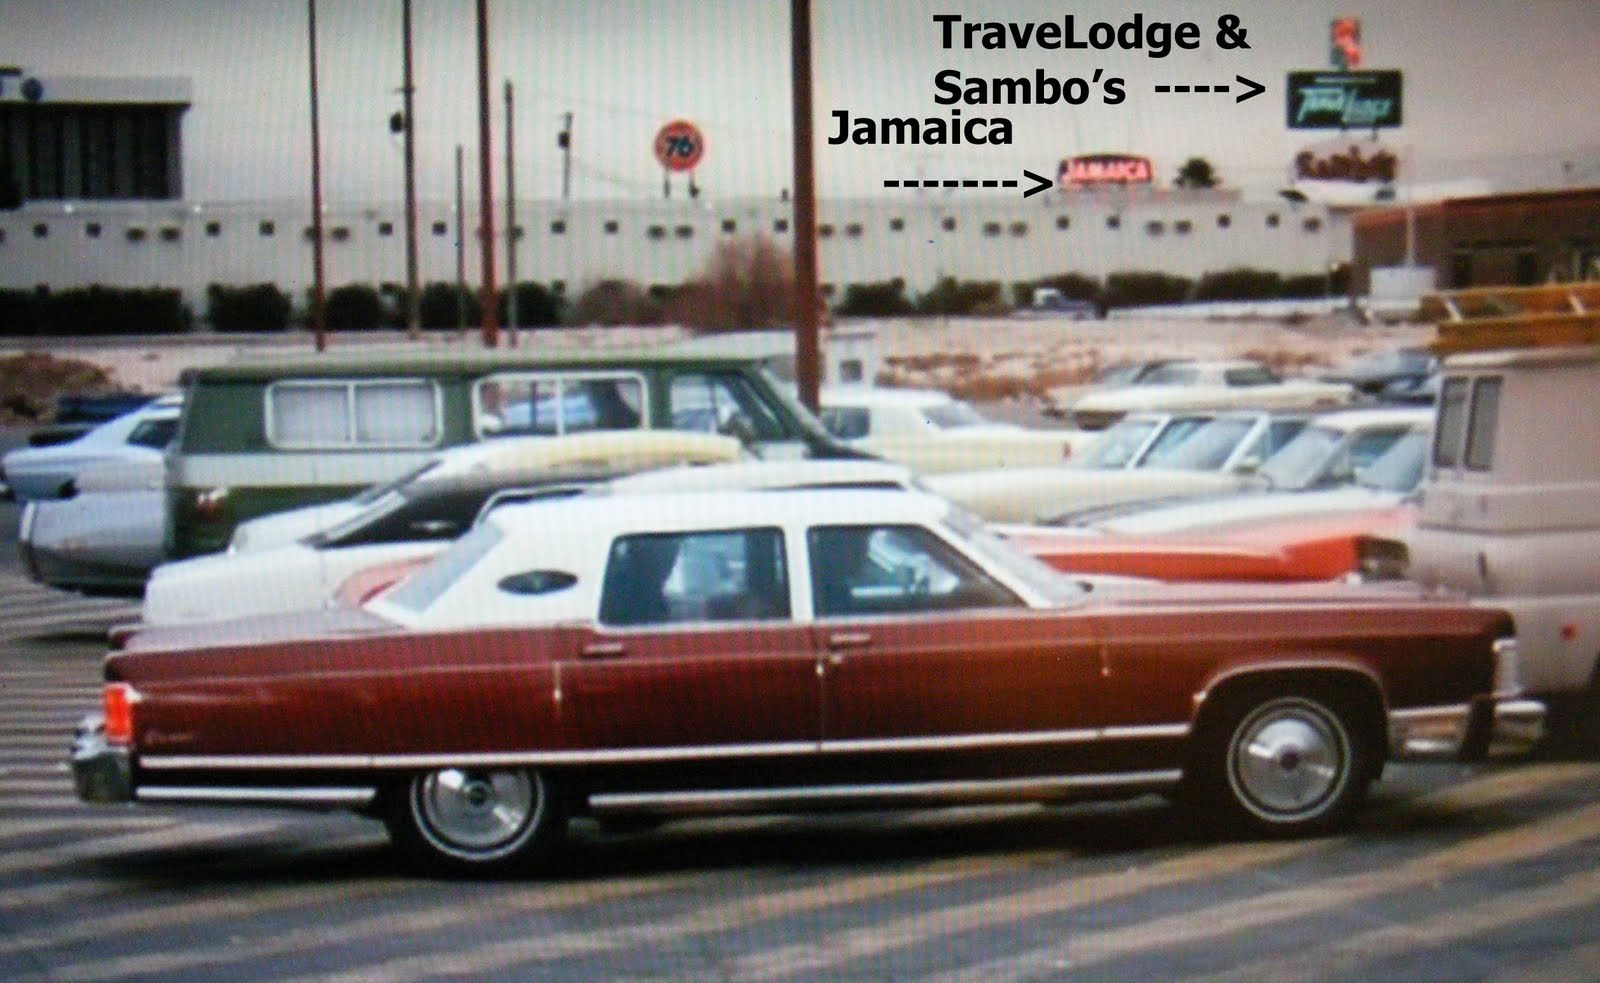 The Rockford Files The Rockford Files Episode Roundabout Great Shots Of Las Vegas From The